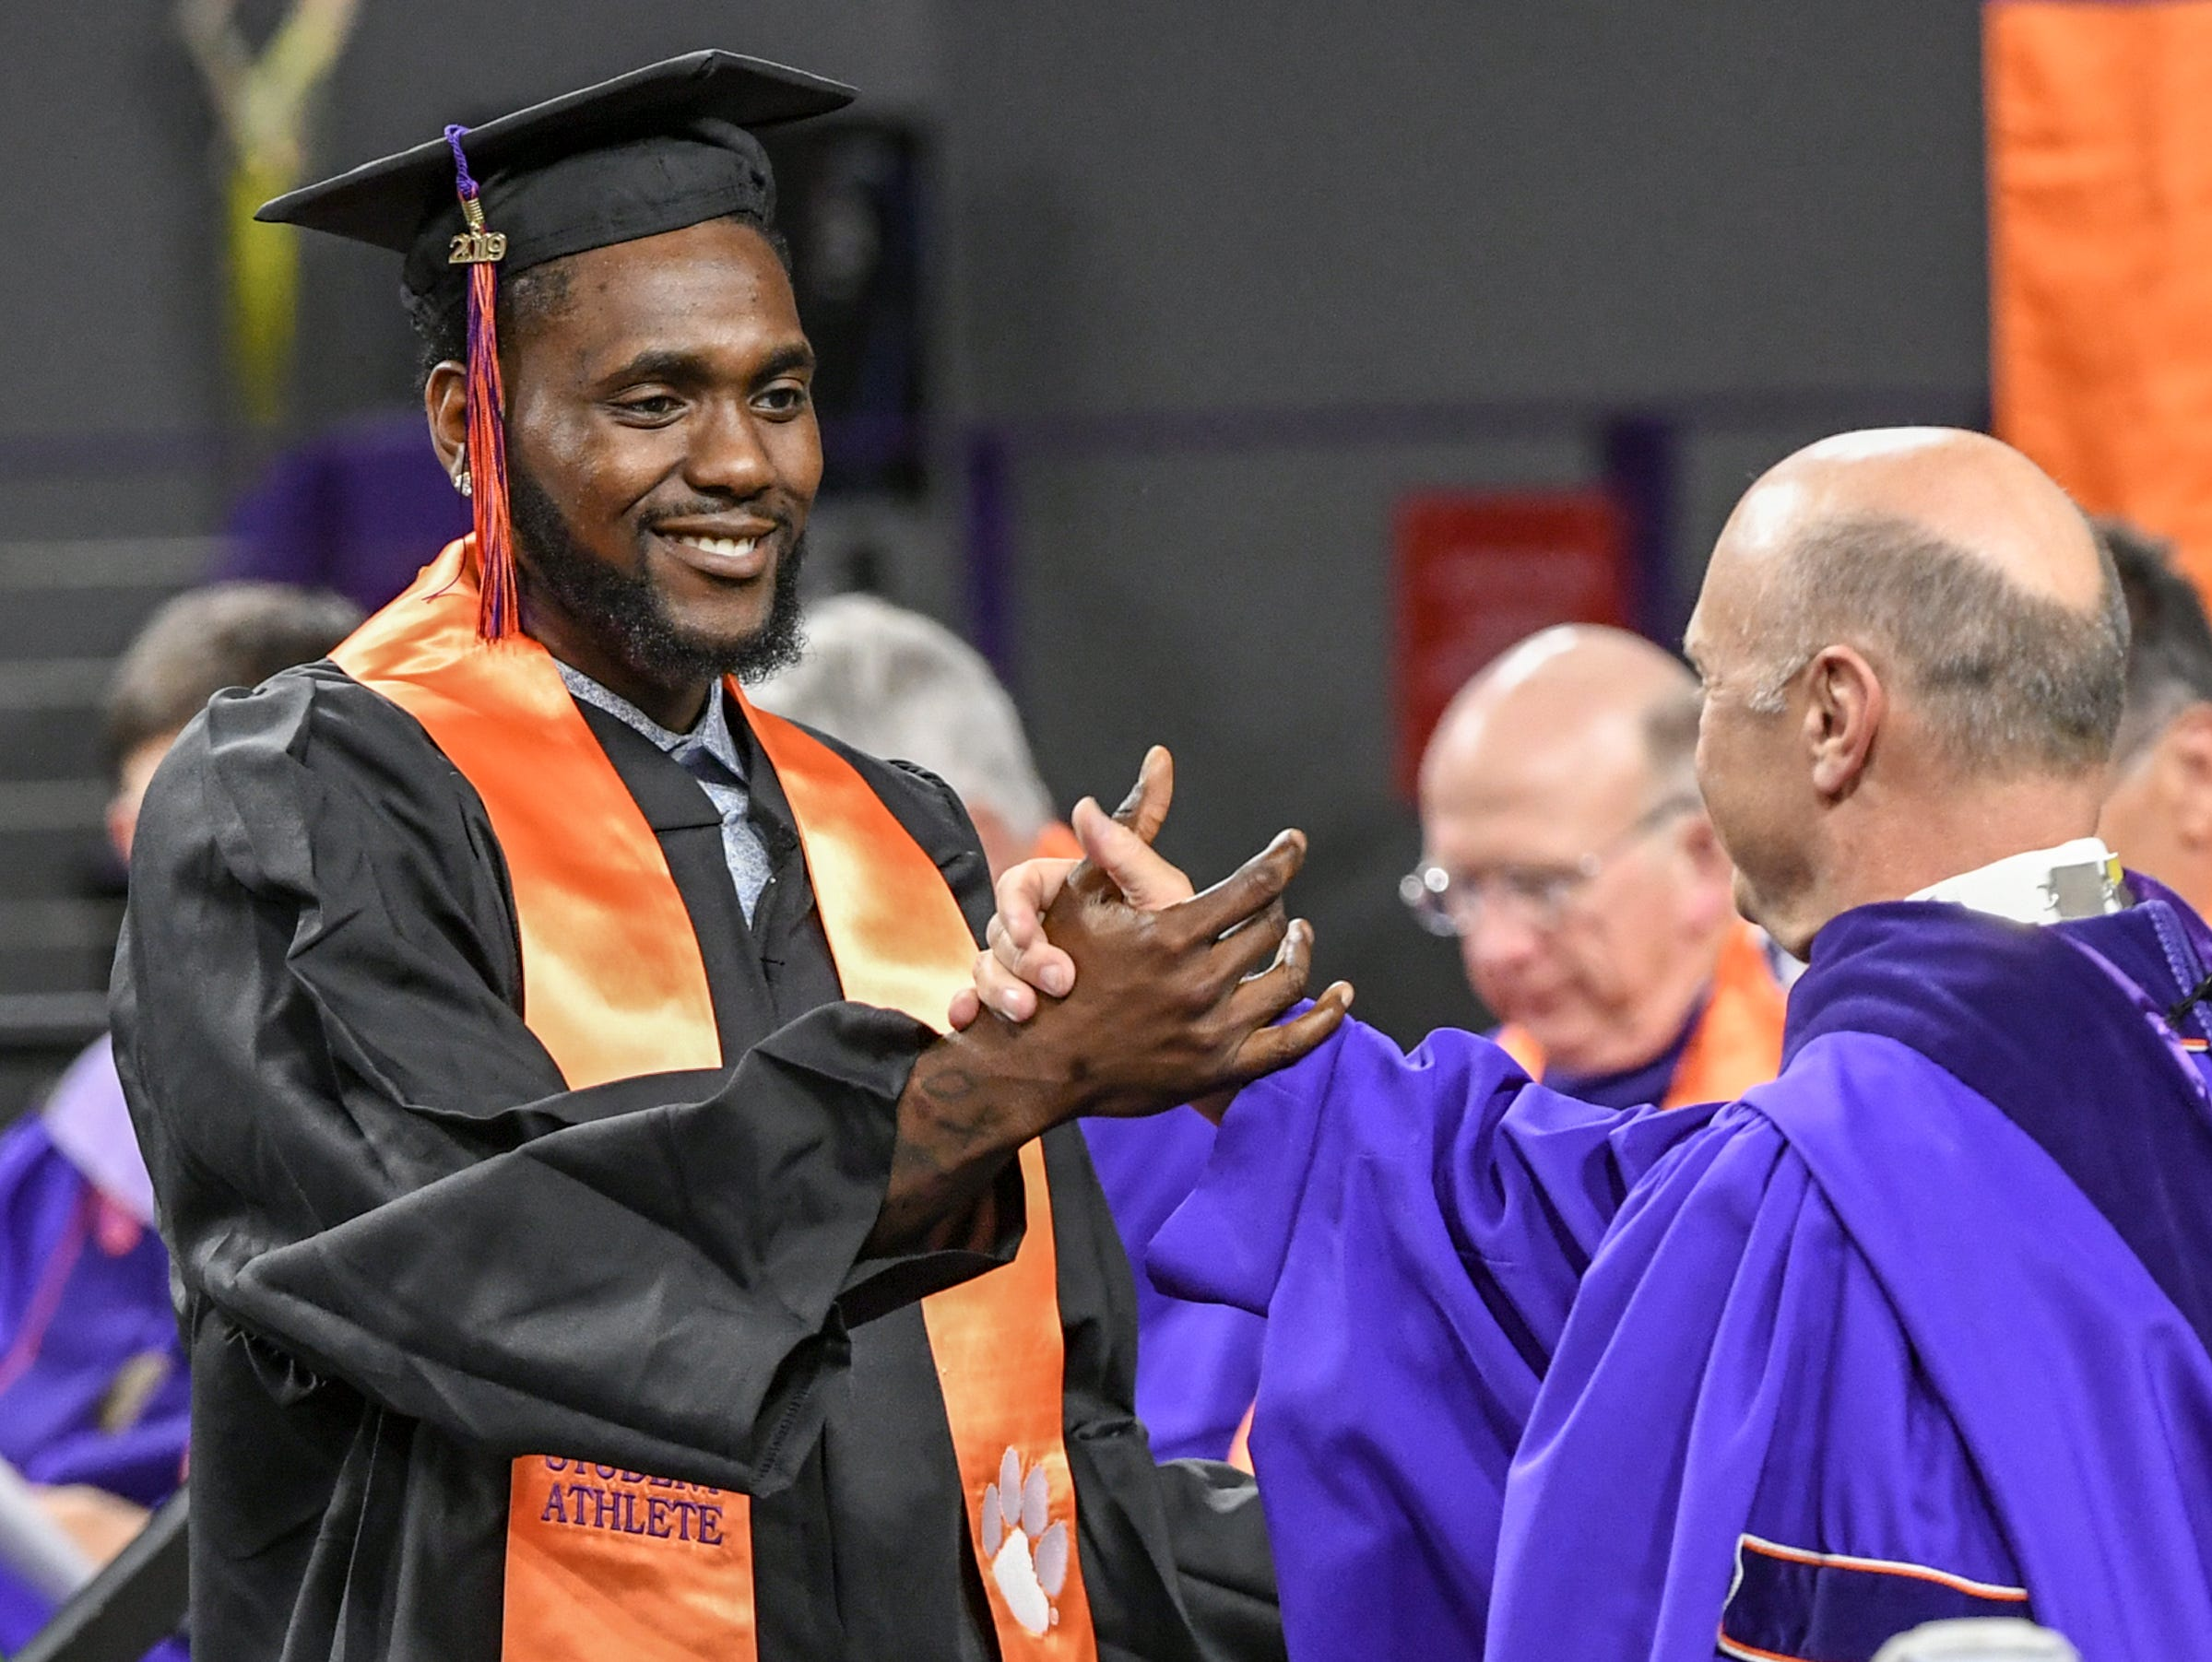 Elijah Thomas, left, a former men's basketball player who earned a bachelor of science in parks, recreation, tourism, management, shakes hands with President Jim Clements during Clemson University commencement ceremonies in Littlejohn Coliseum in Clemson Friday, May 10, 2019.